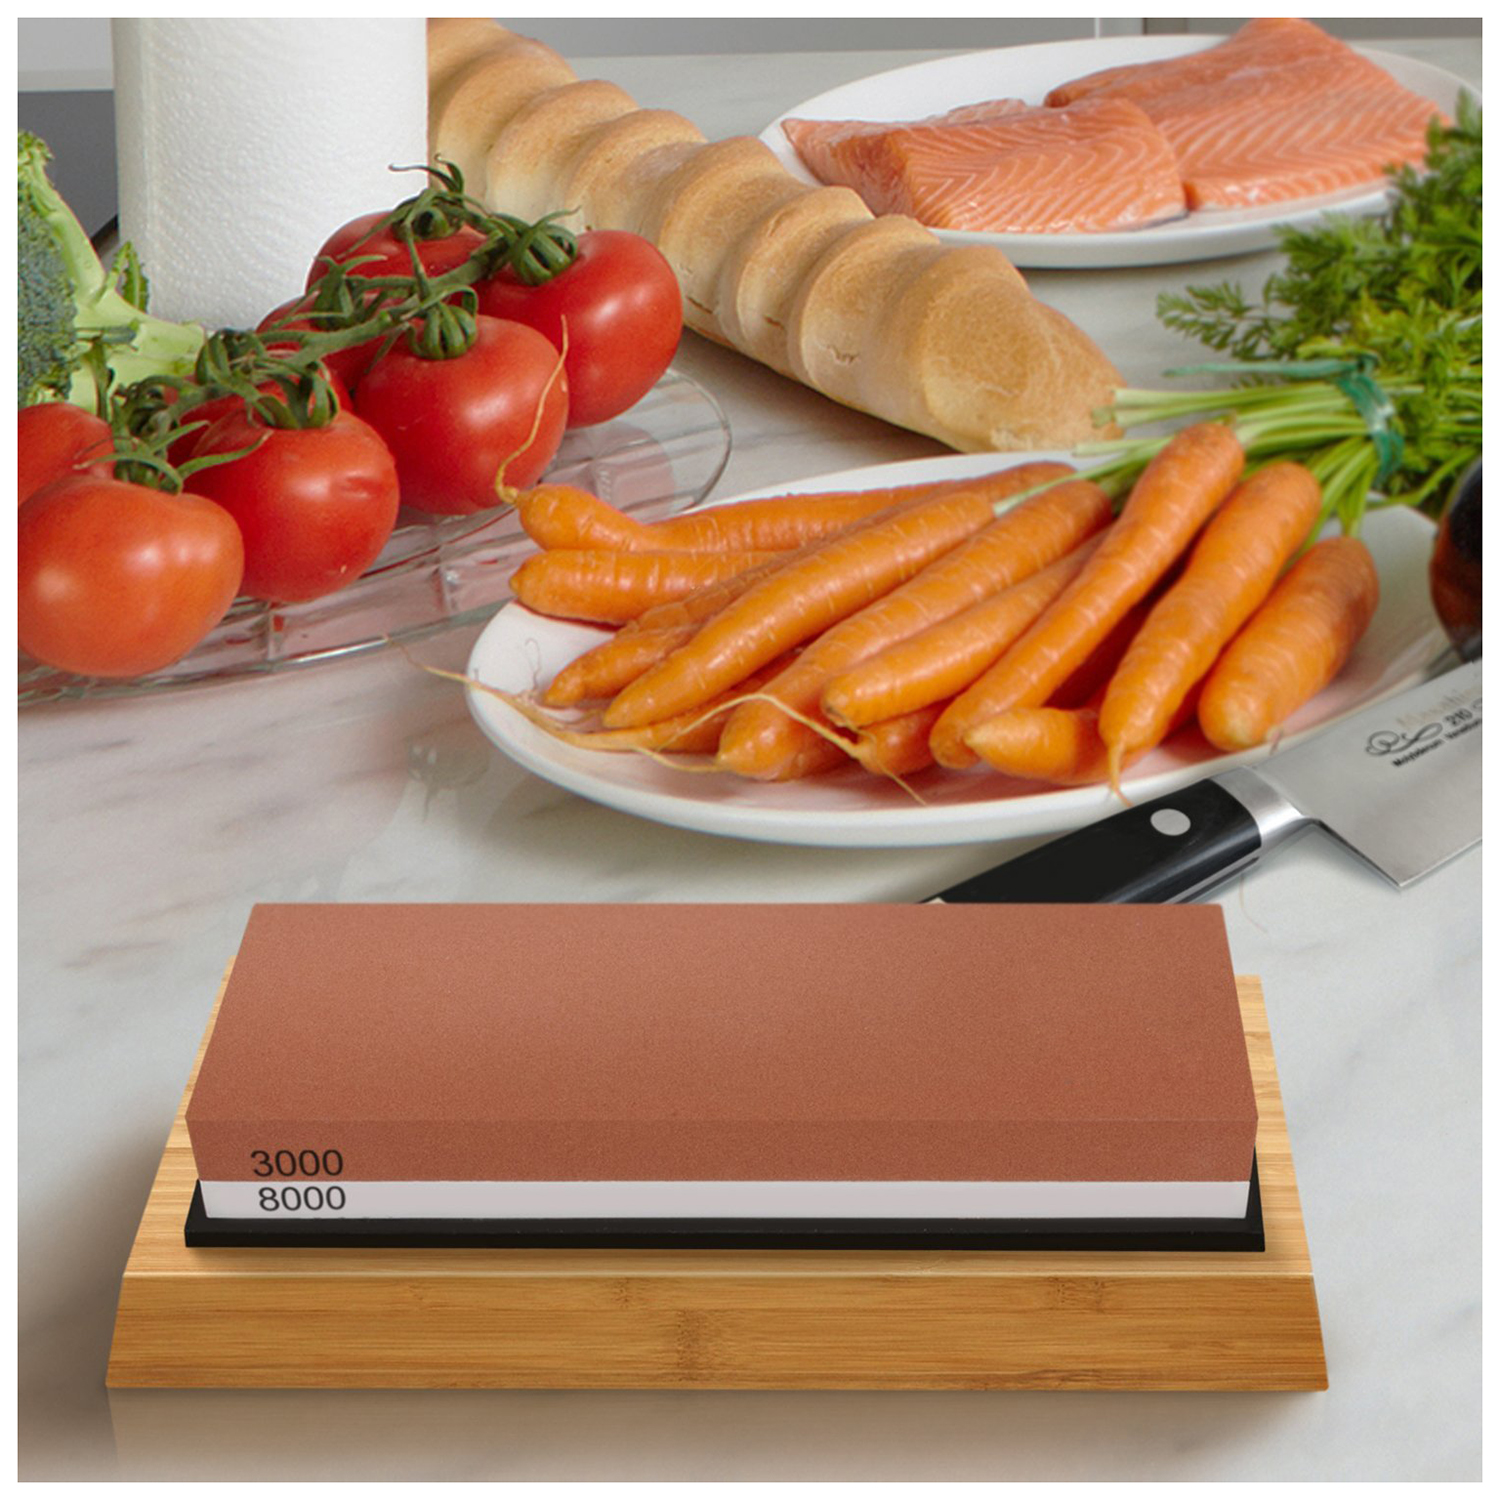 Sharpening Stone 3000 & 8000 Grit – Double Sided Whetstone Set For Knives With Non-Slip Bamboo Base and Free Angle Guide